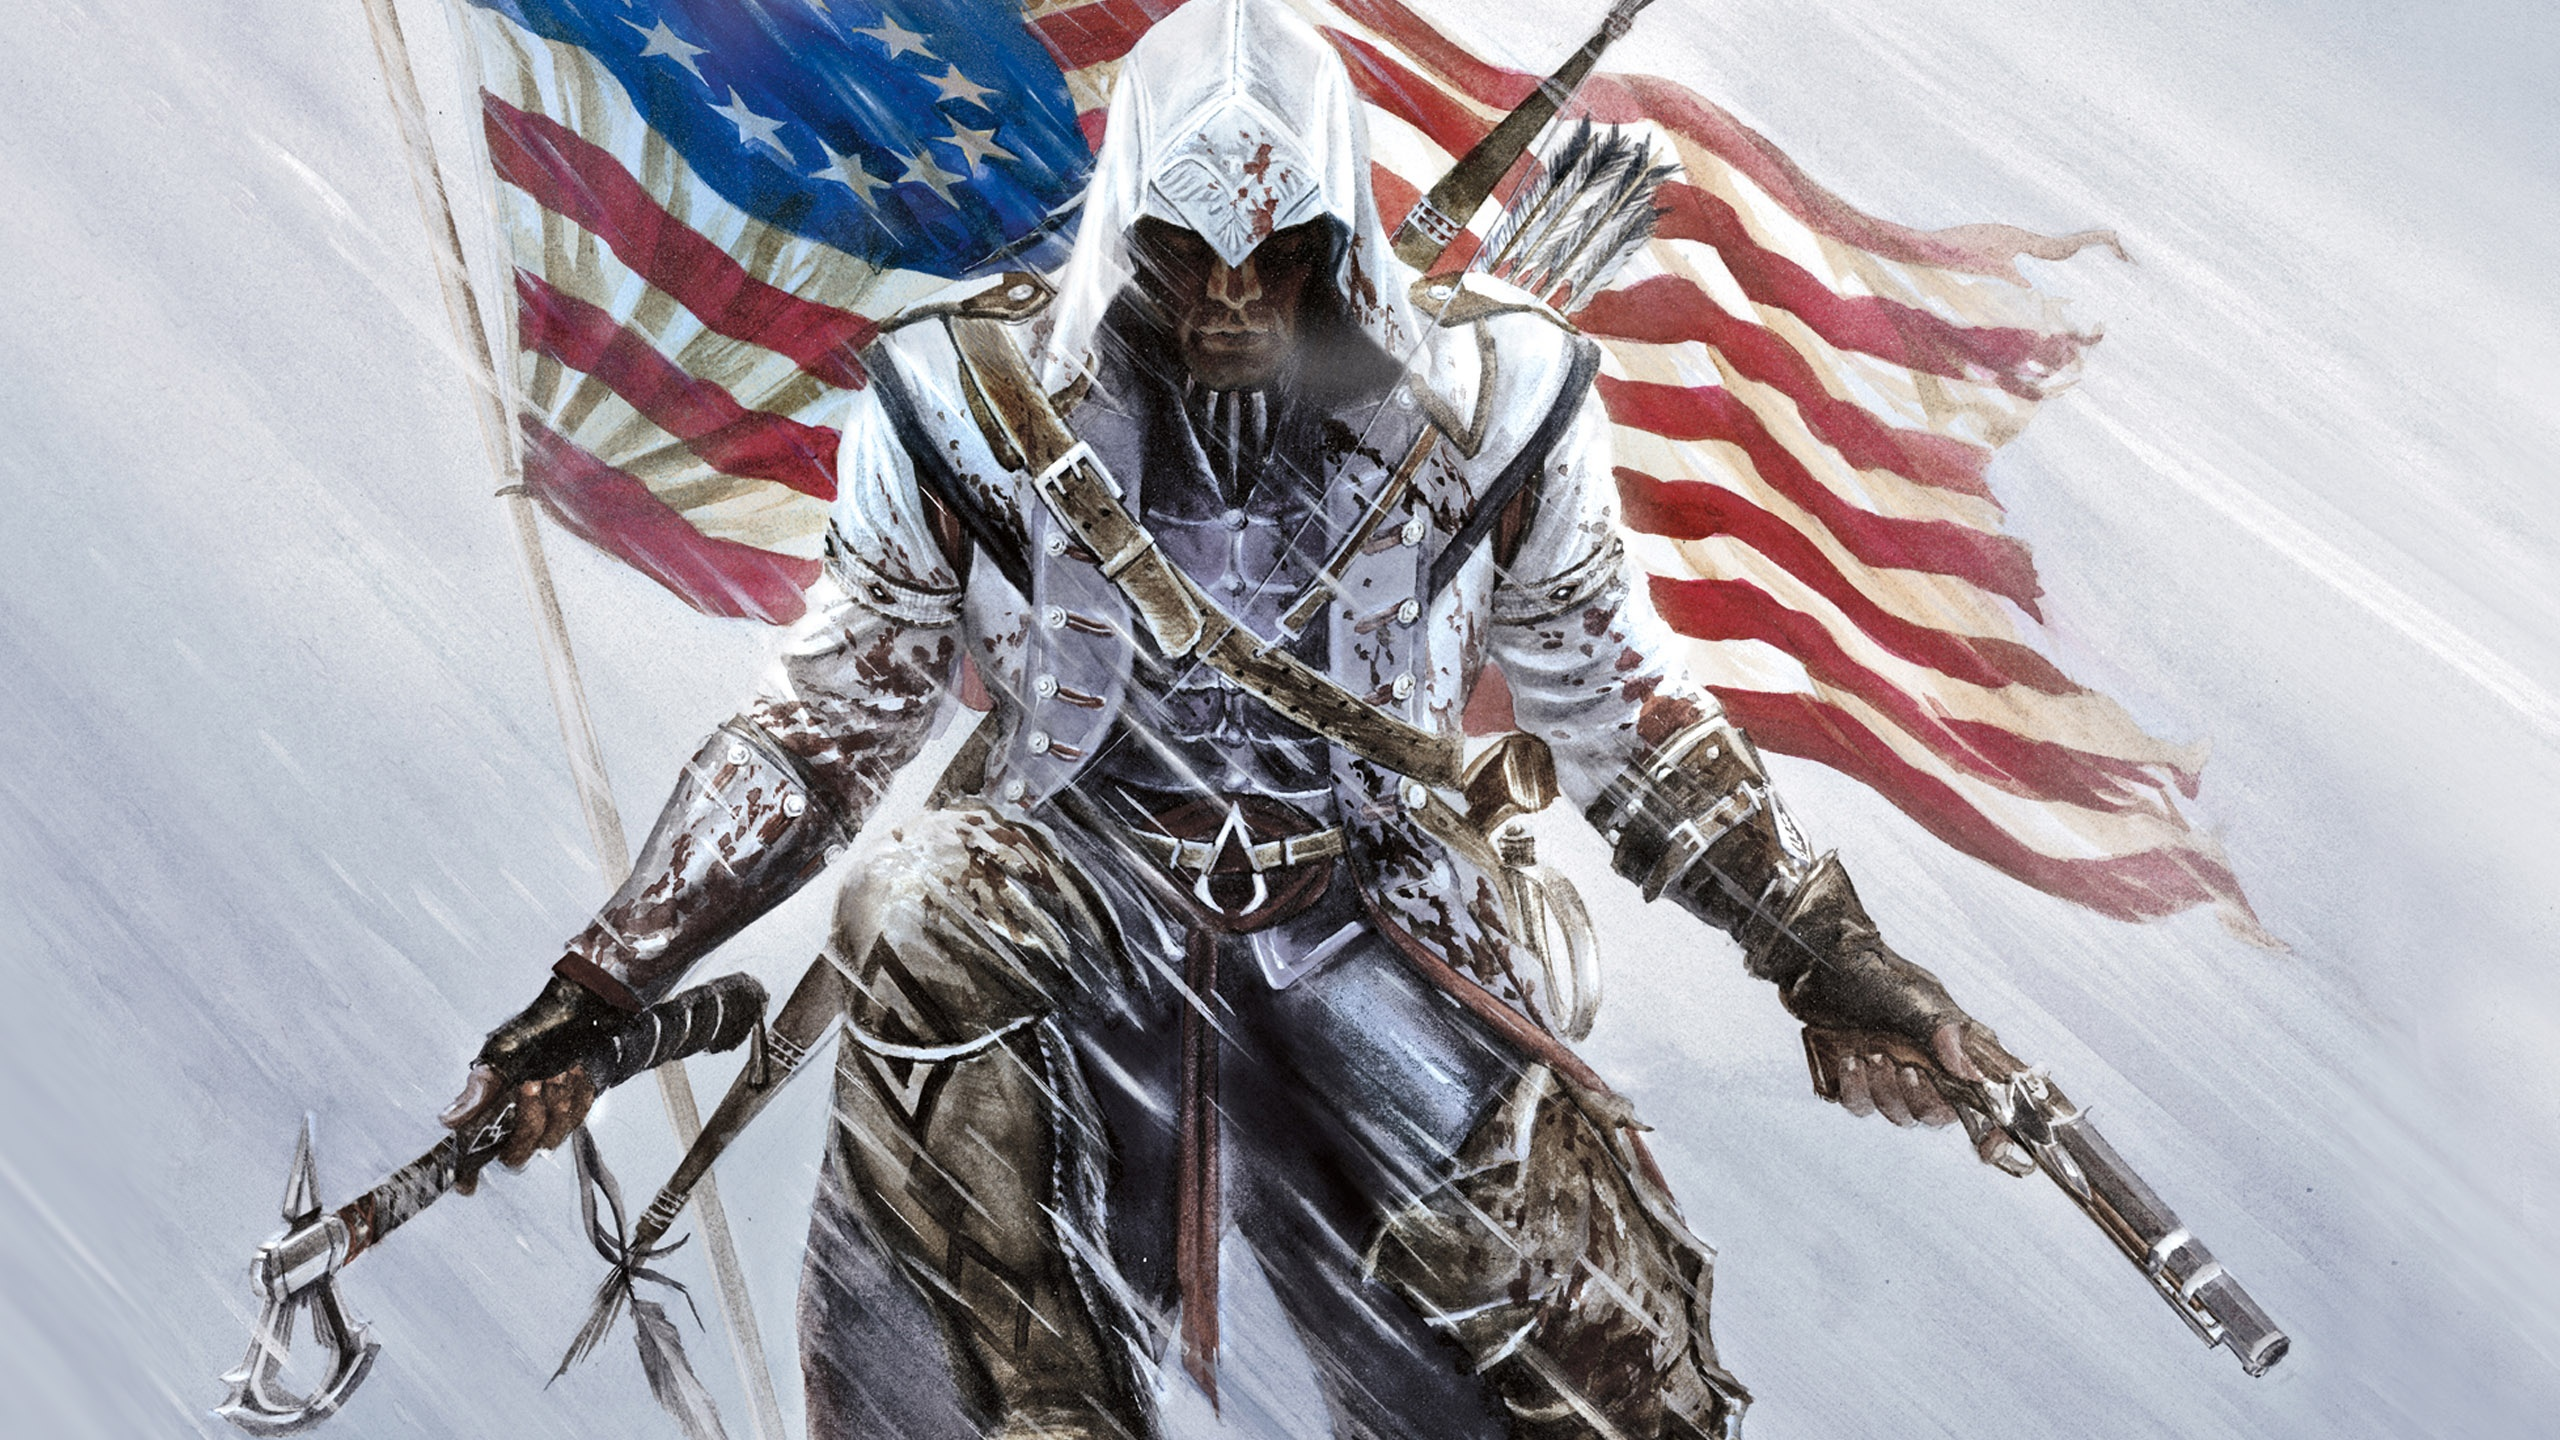 wallpapers of Assassins Creed 3 You are downloading Assassins Creed 3 2560x1440